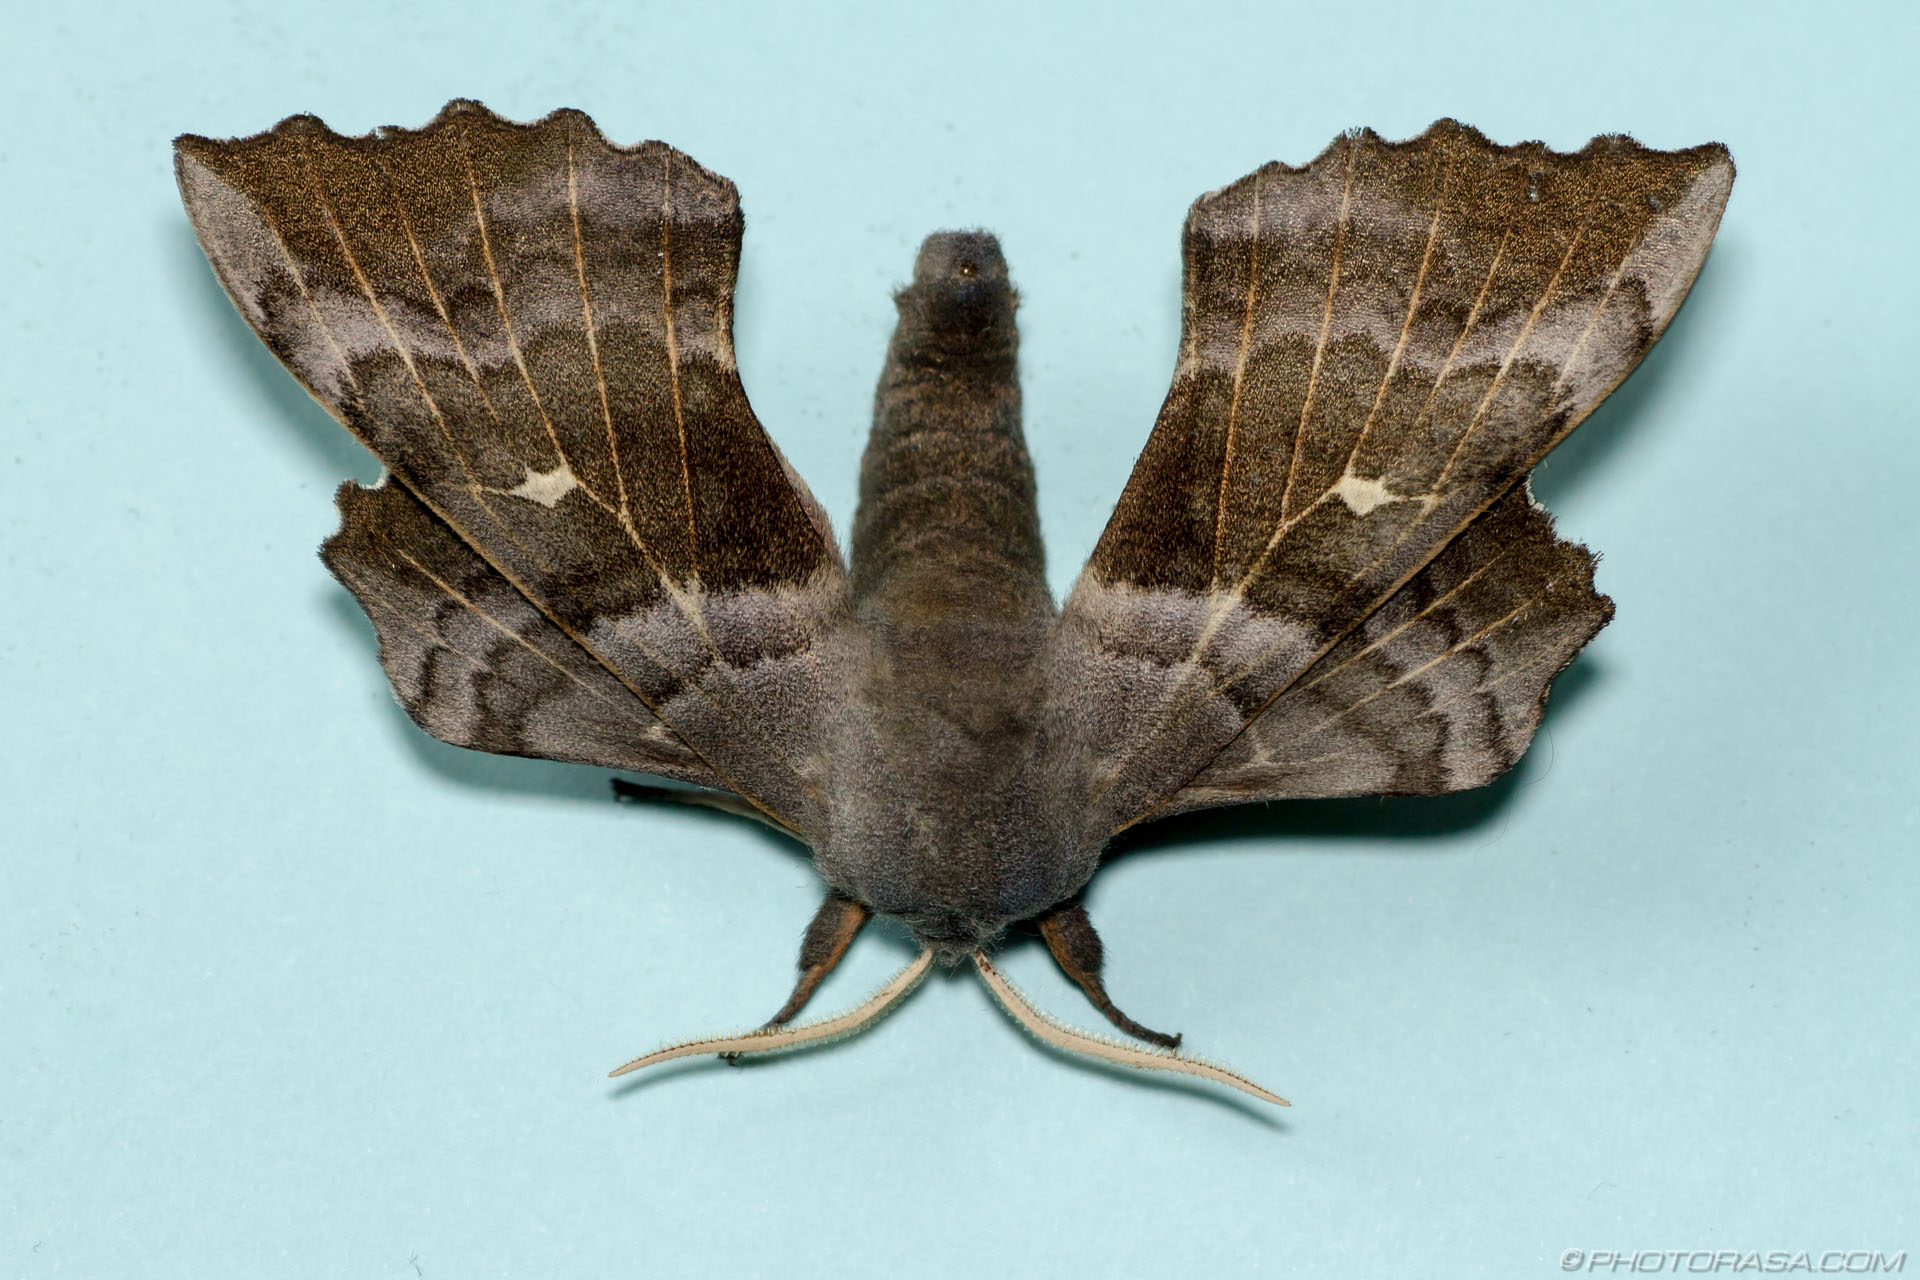 https://photorasa.com/poplar-hawk-moth/large-brown-moth-against-plain-background/